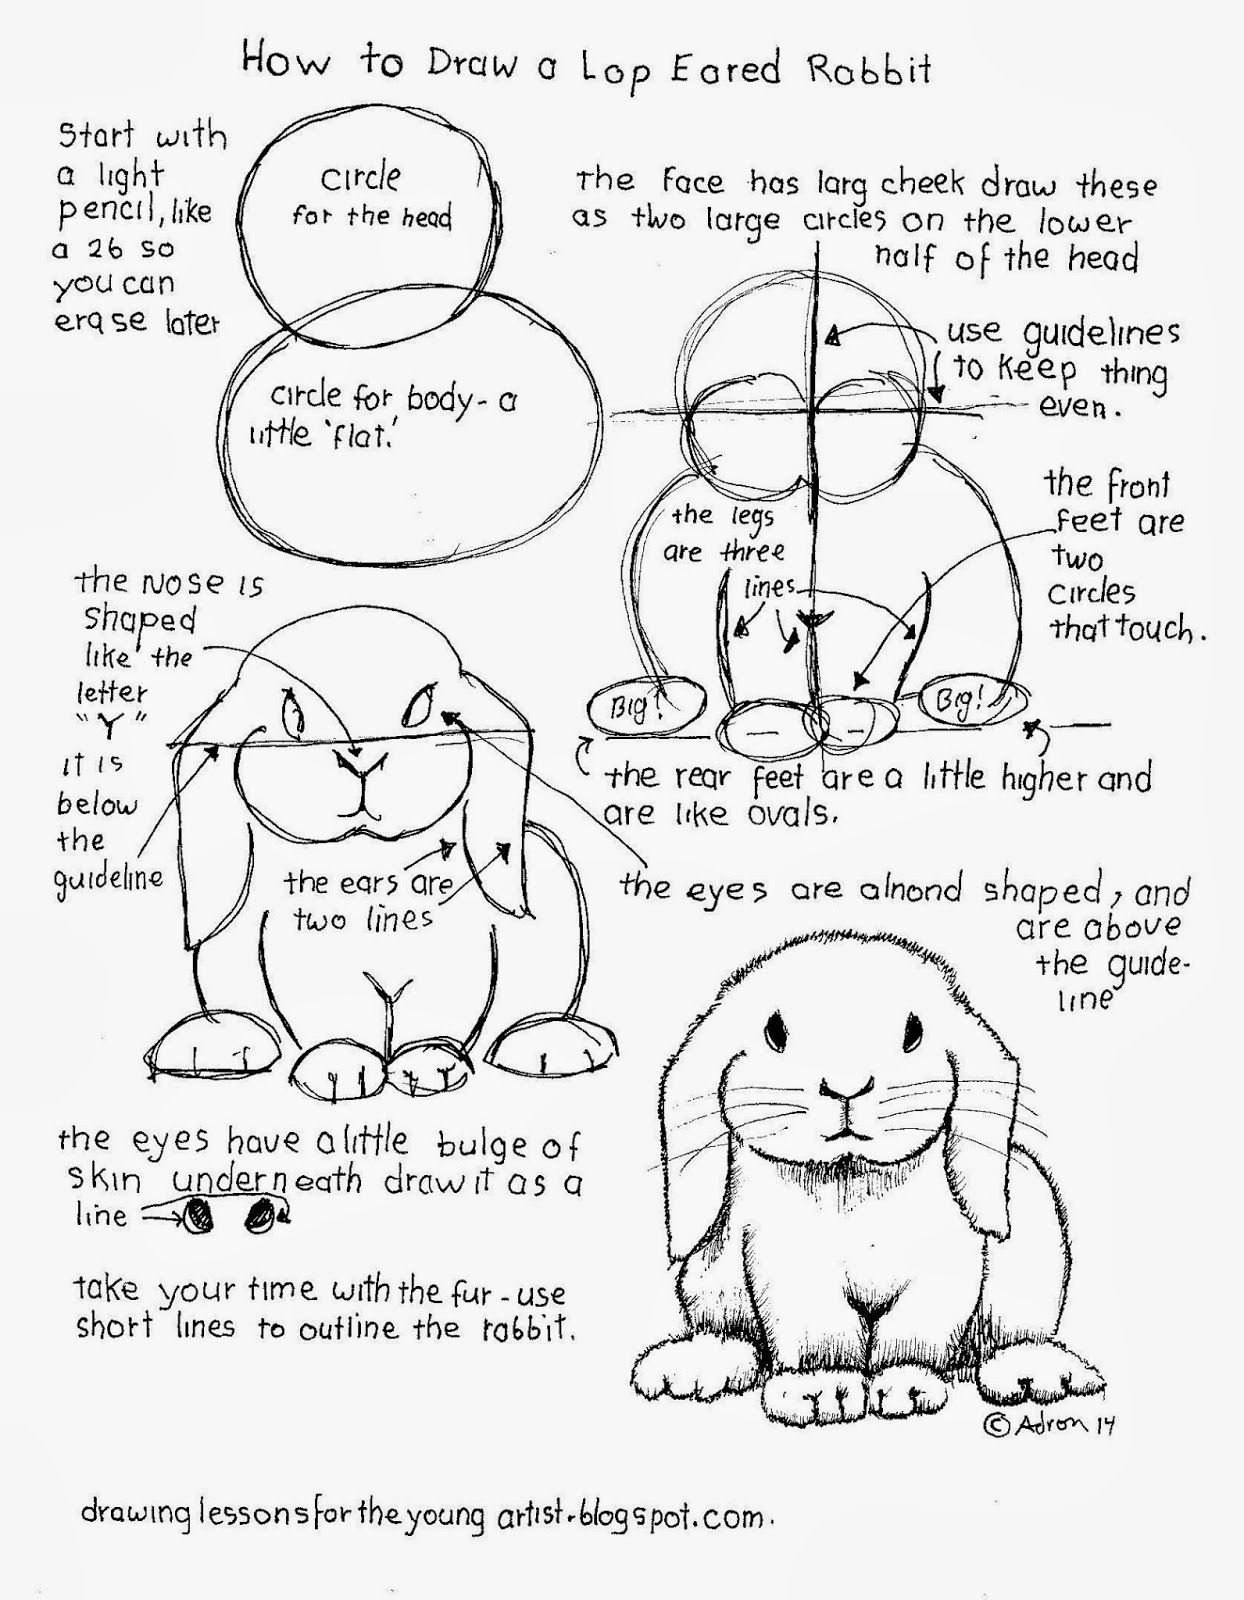 How To Draw A Lop Eared Rabbit Worksheet See More At My